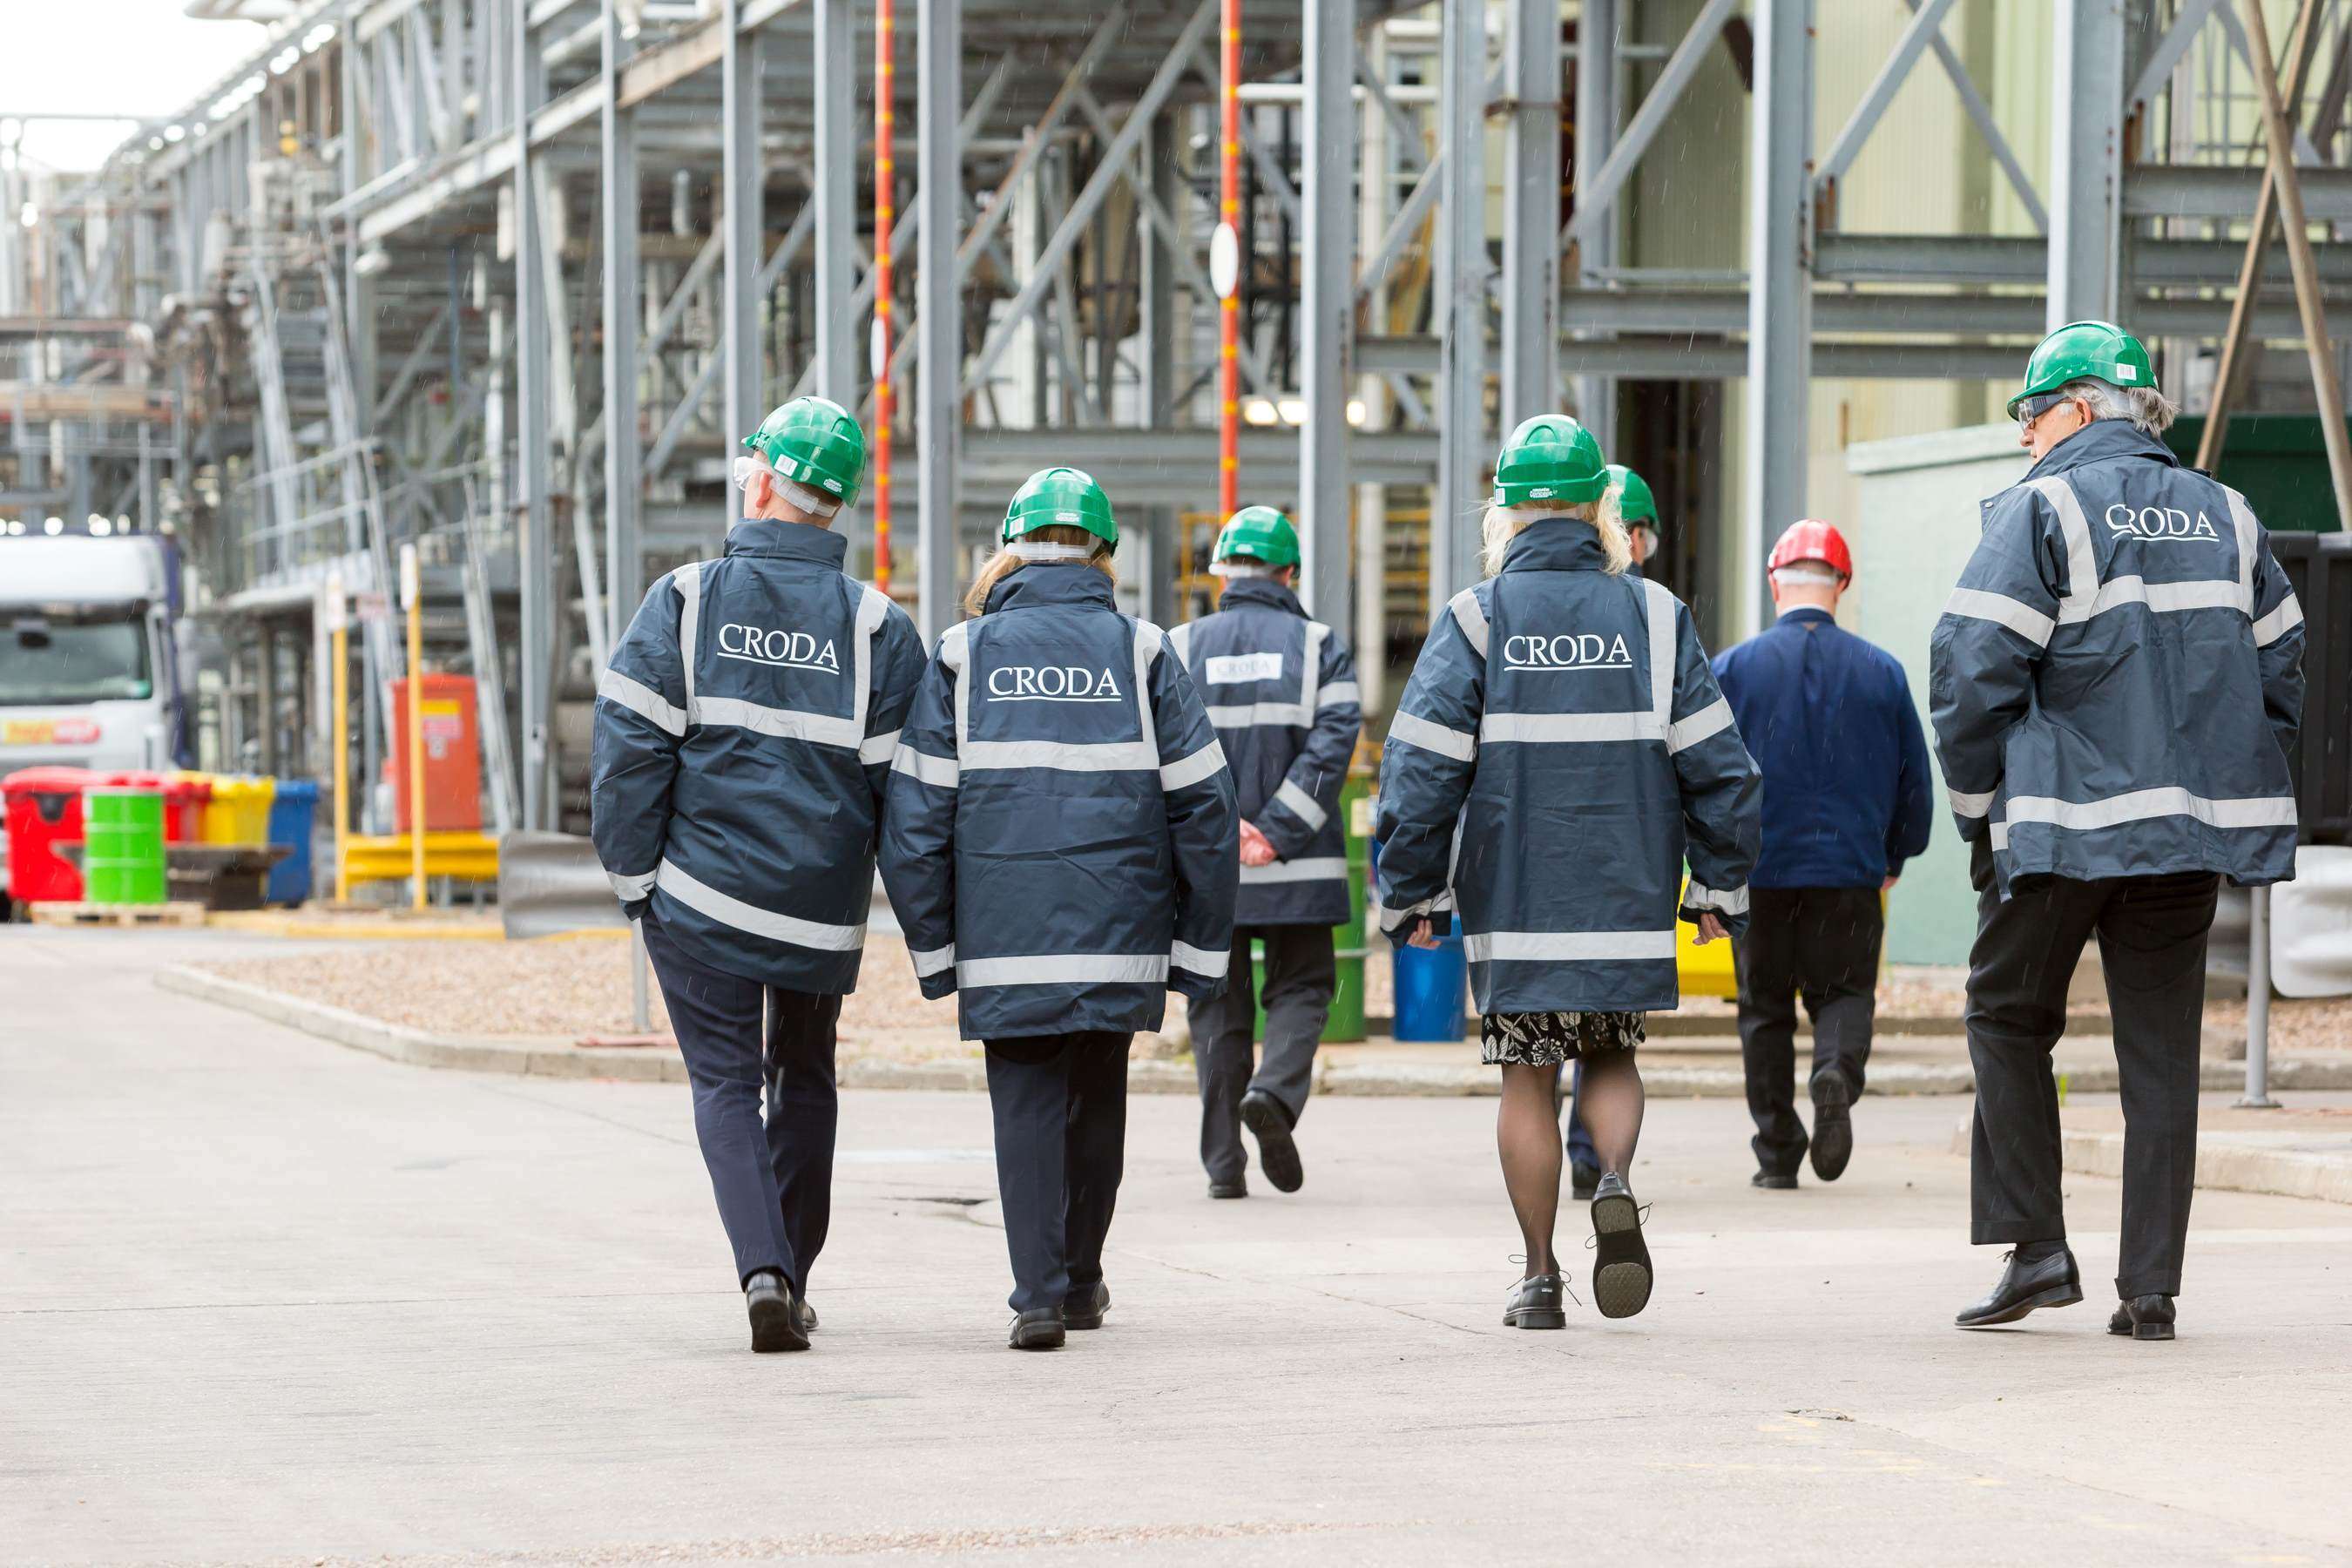 Croda scores high on Climate change and Water reports.